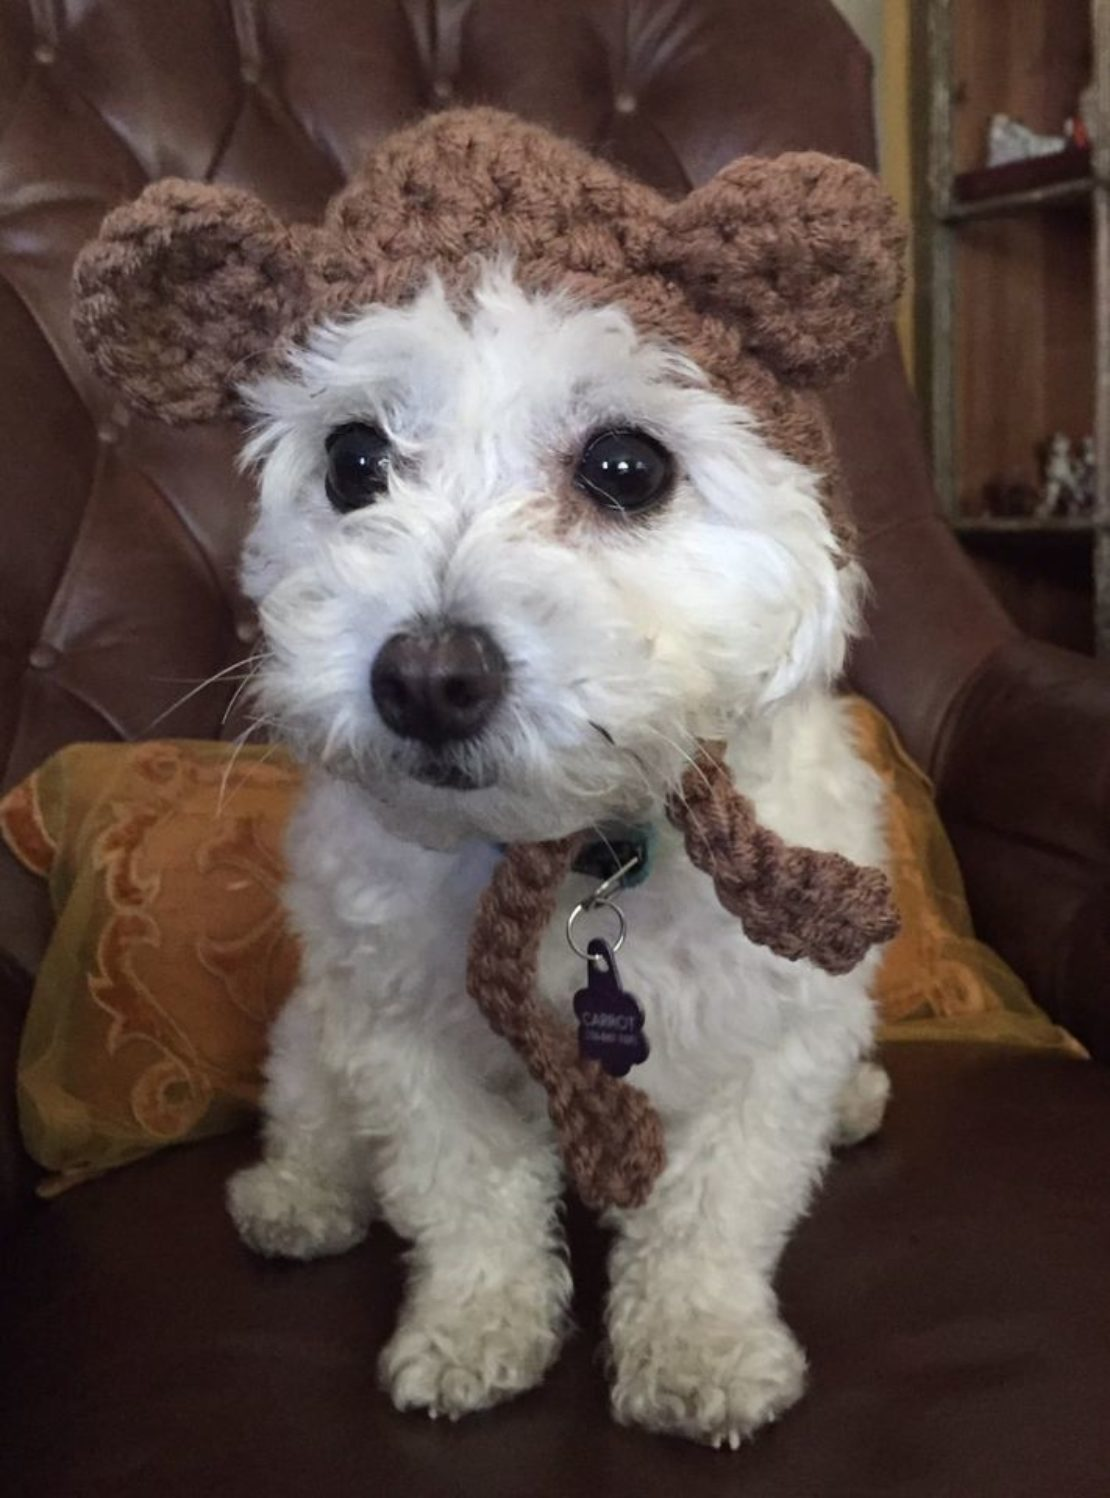 little, fluffy, white dog sits with a bewildered look on her face. She's wearning a knit hat with teddy-bear ears.